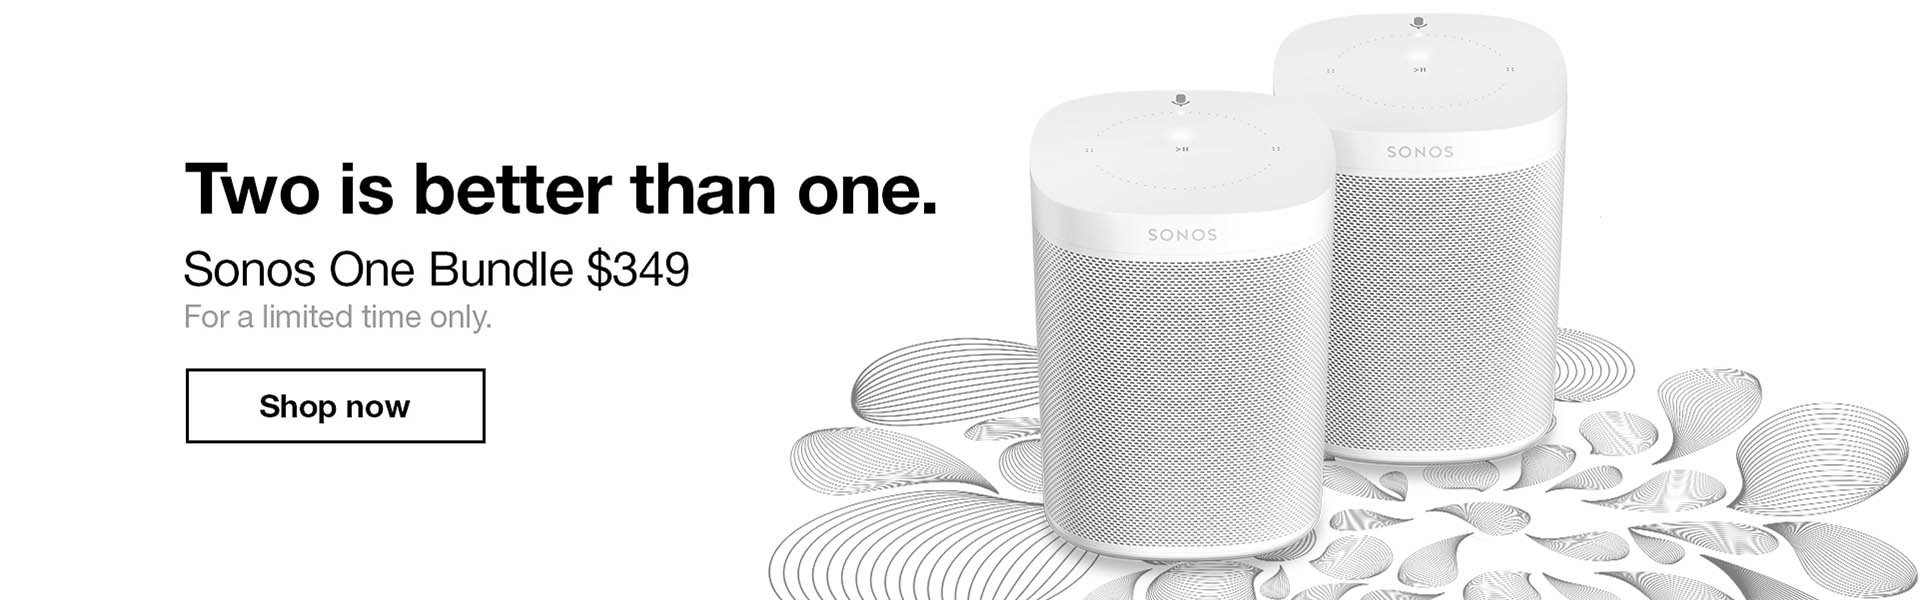 Save $49 when you purchase two Sonos One Voice-Controlled Smart Speakers together and save even more with our expertly curated bundles. Discover what Sonos & Amazon Alexa can do for you.